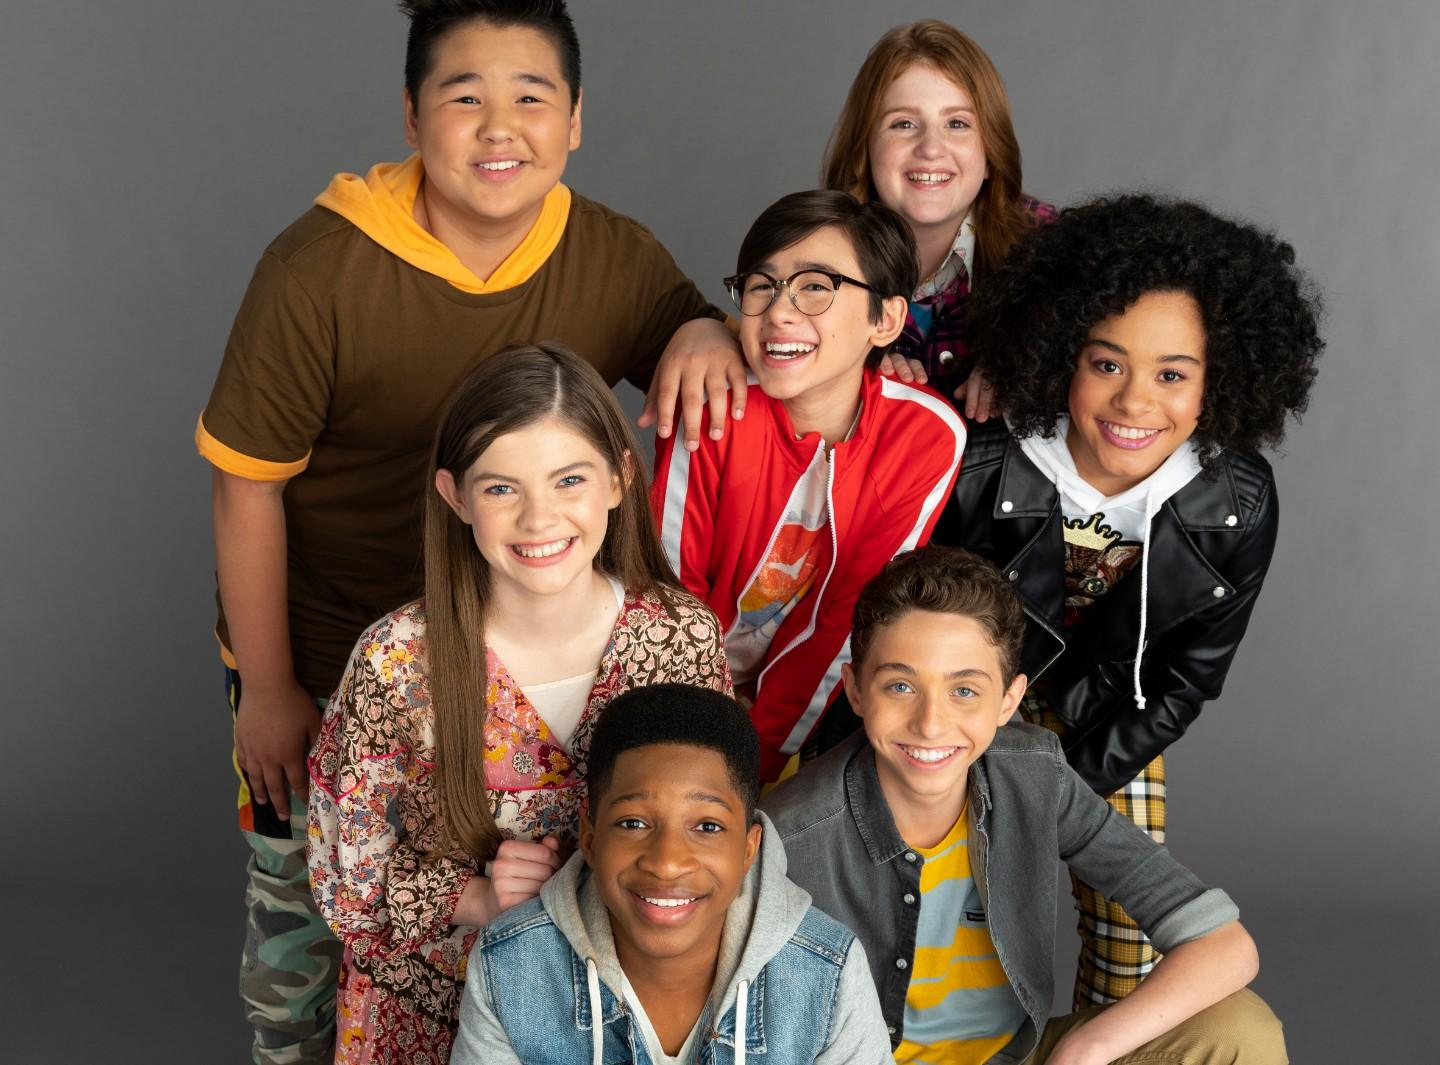 Nickelodeon's 'All That' 2019 Premiere: New And Returning Cast